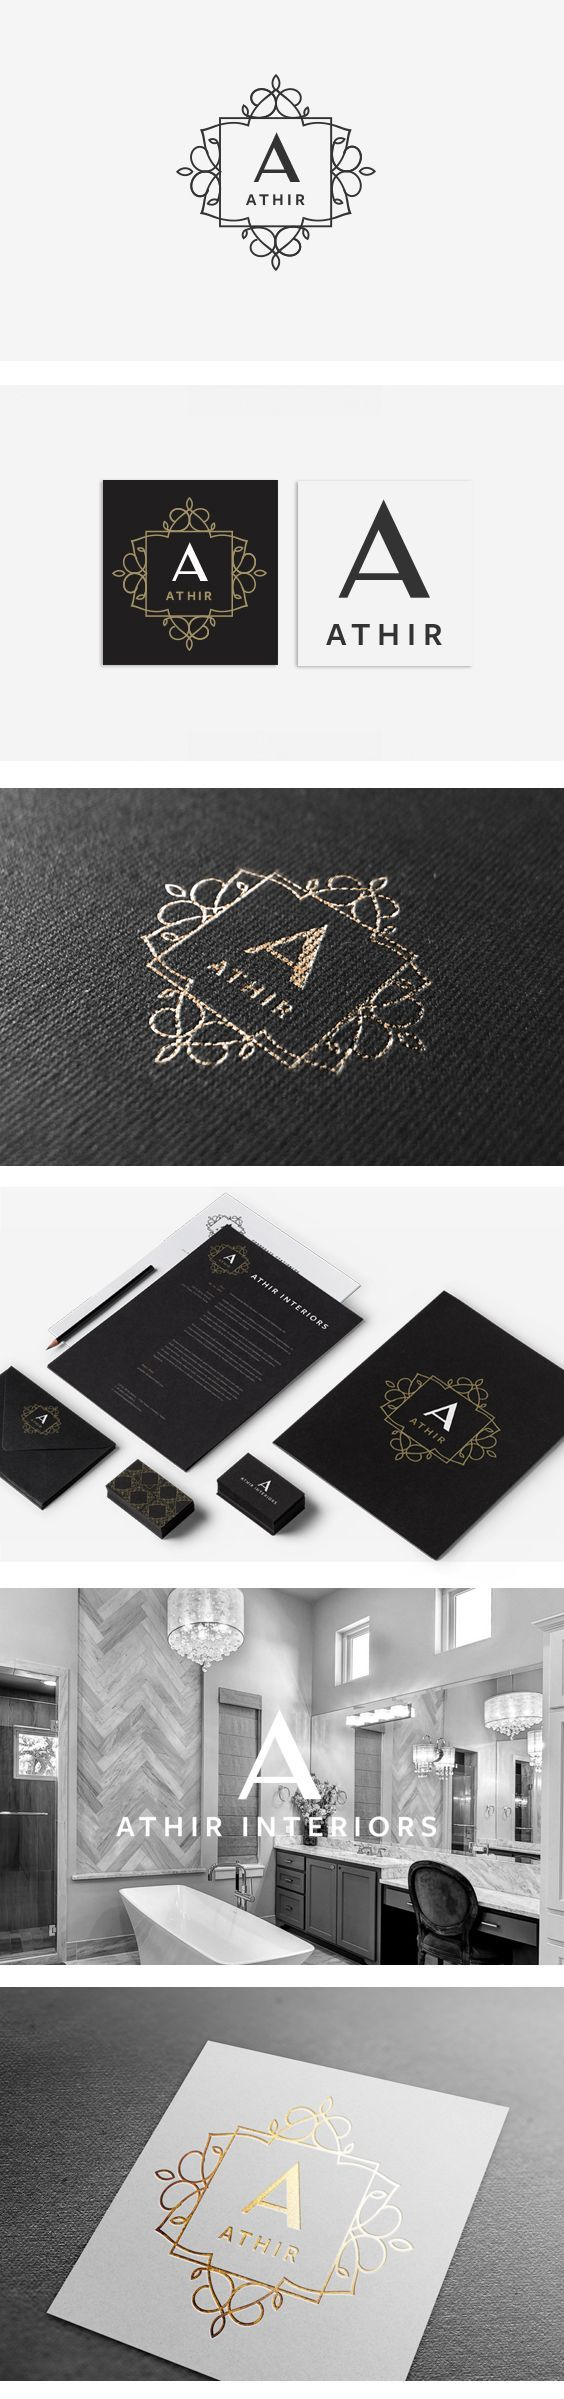 Clean logo design, monogram, gold, logo, design, a, elegant, clean, professional, branding, black, white, ornate, frame, interior, design